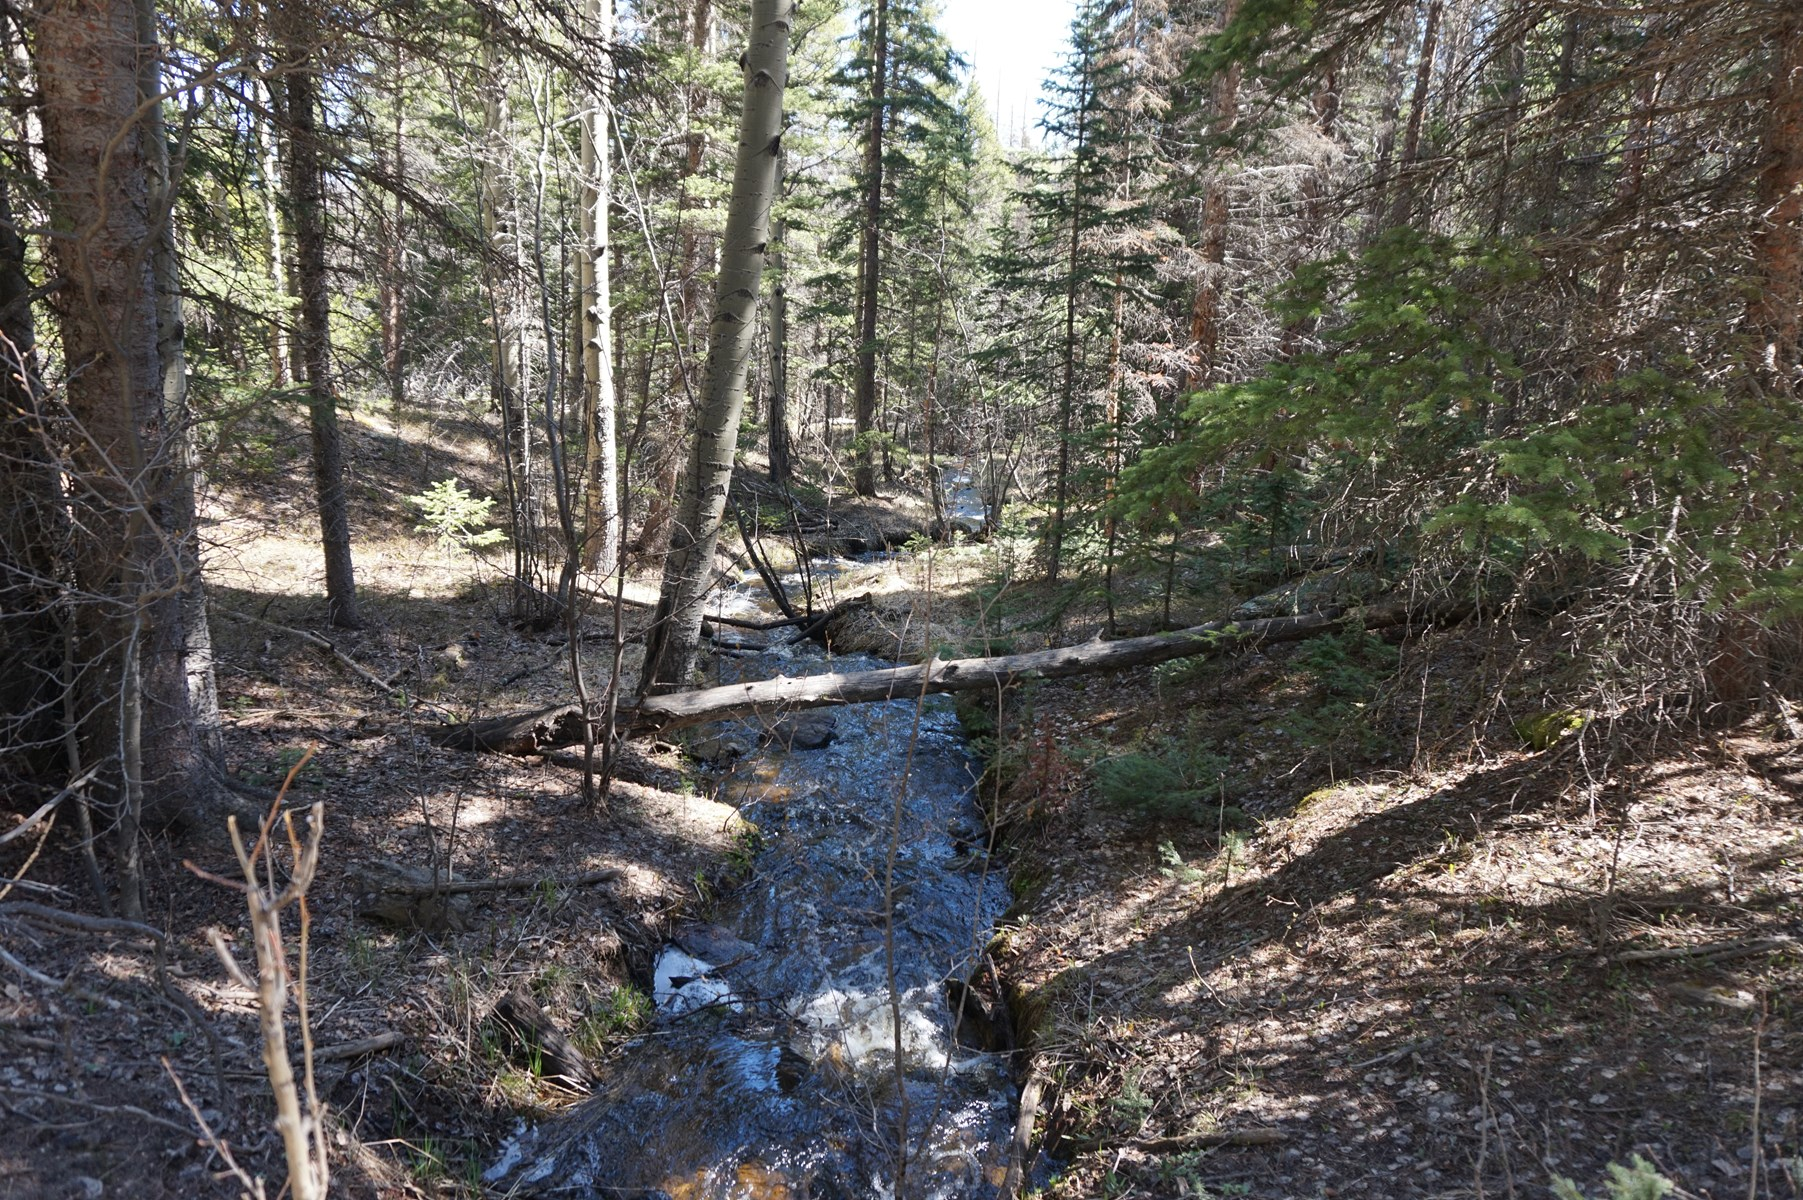 Colorado Hunting Property/Cabin For Sale, Elk, Deer